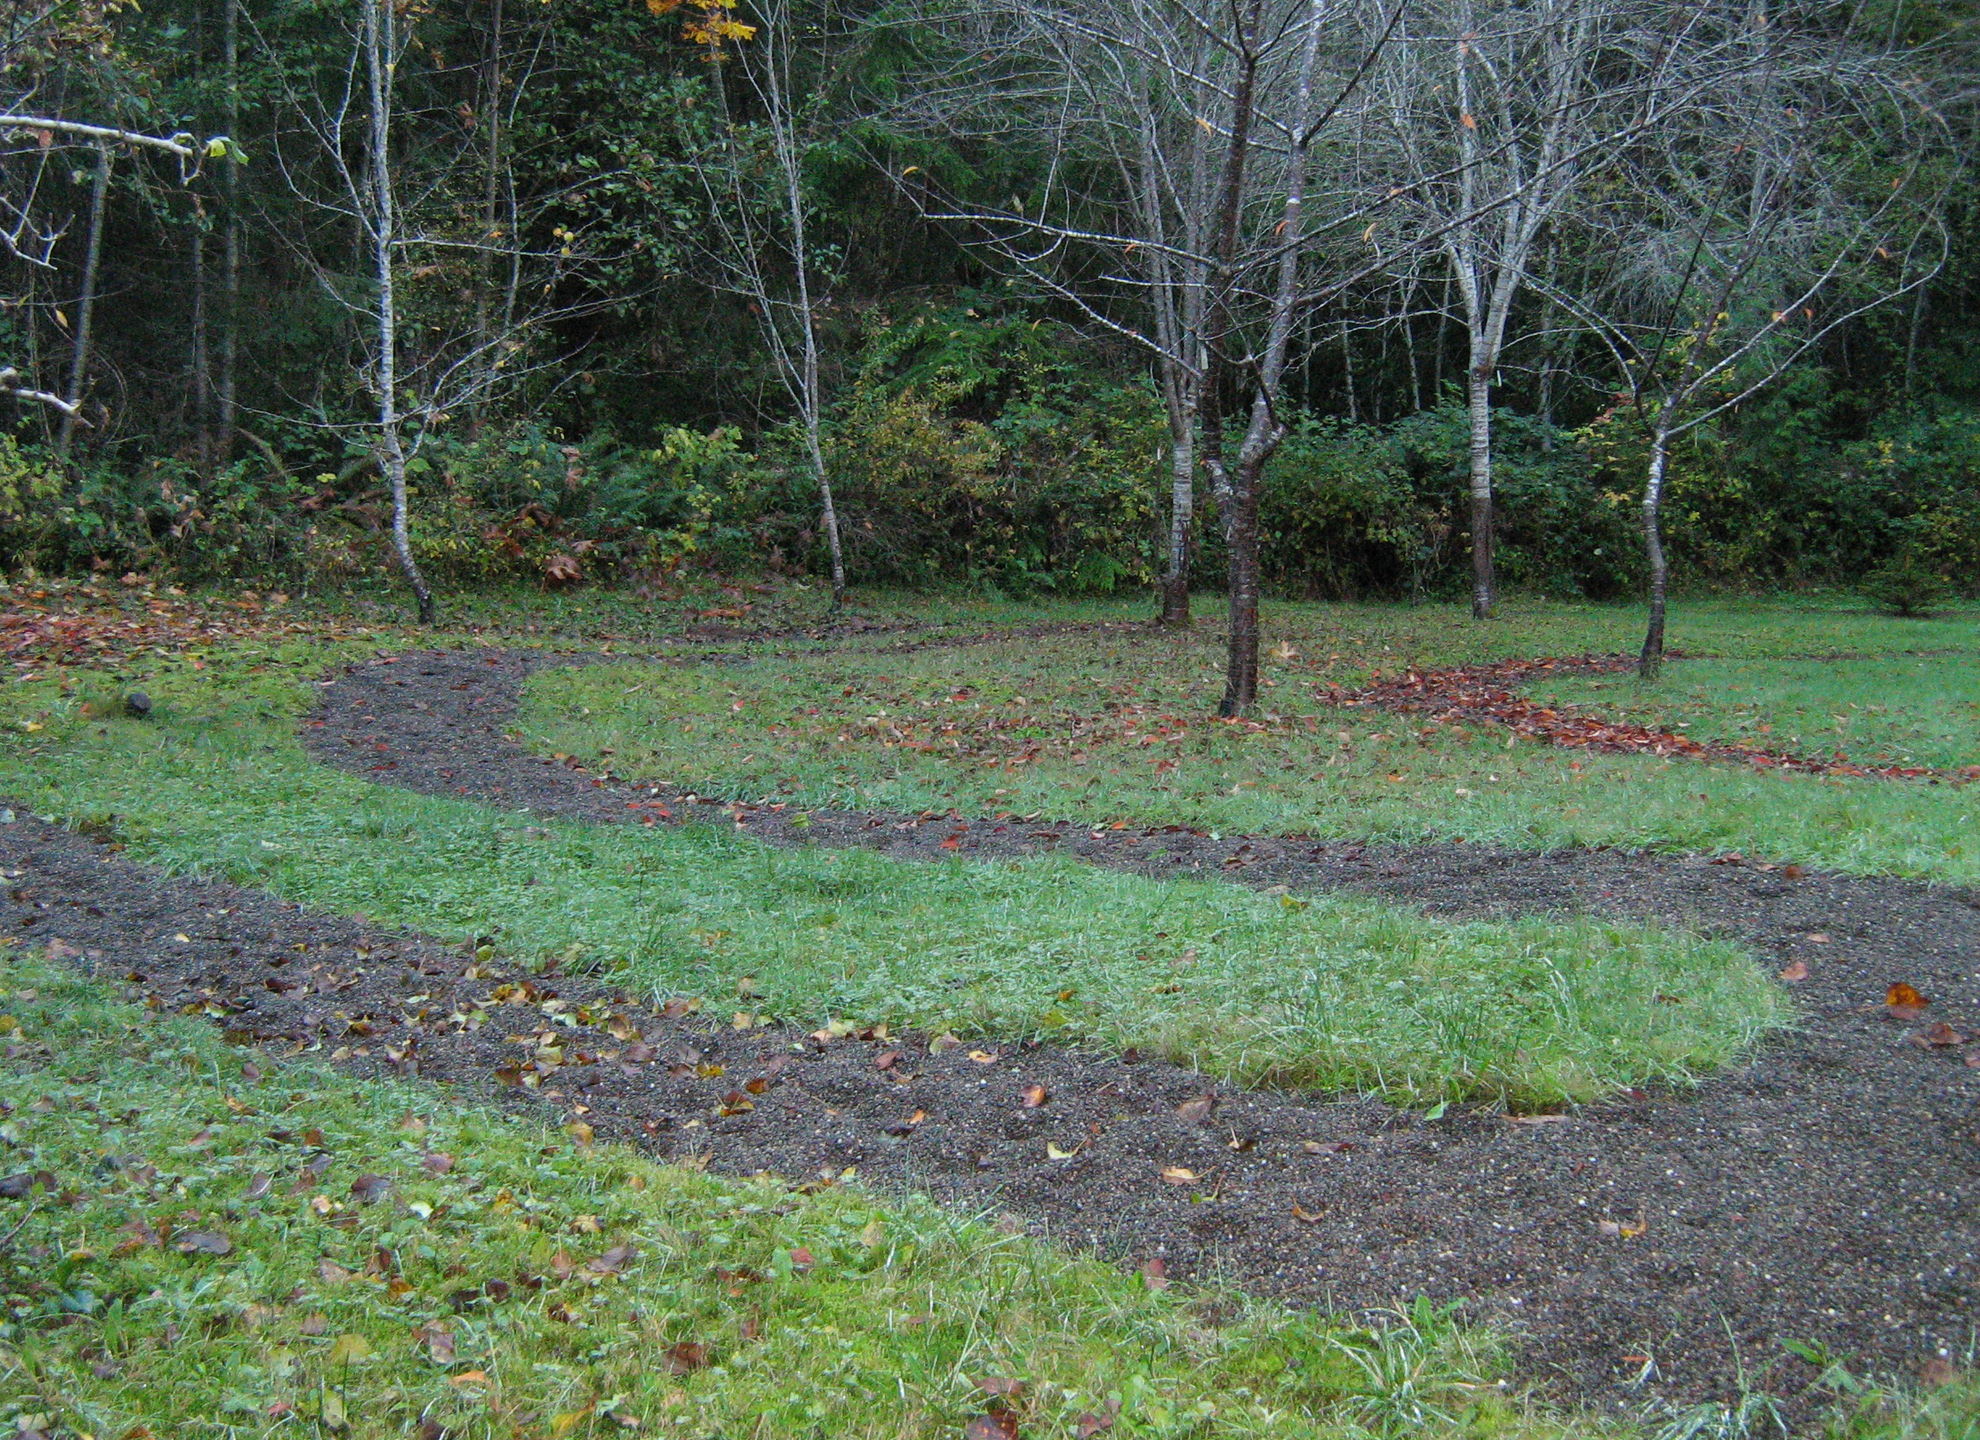 Photo of a section of the labyrinth at Hypatia-in-the-Woods